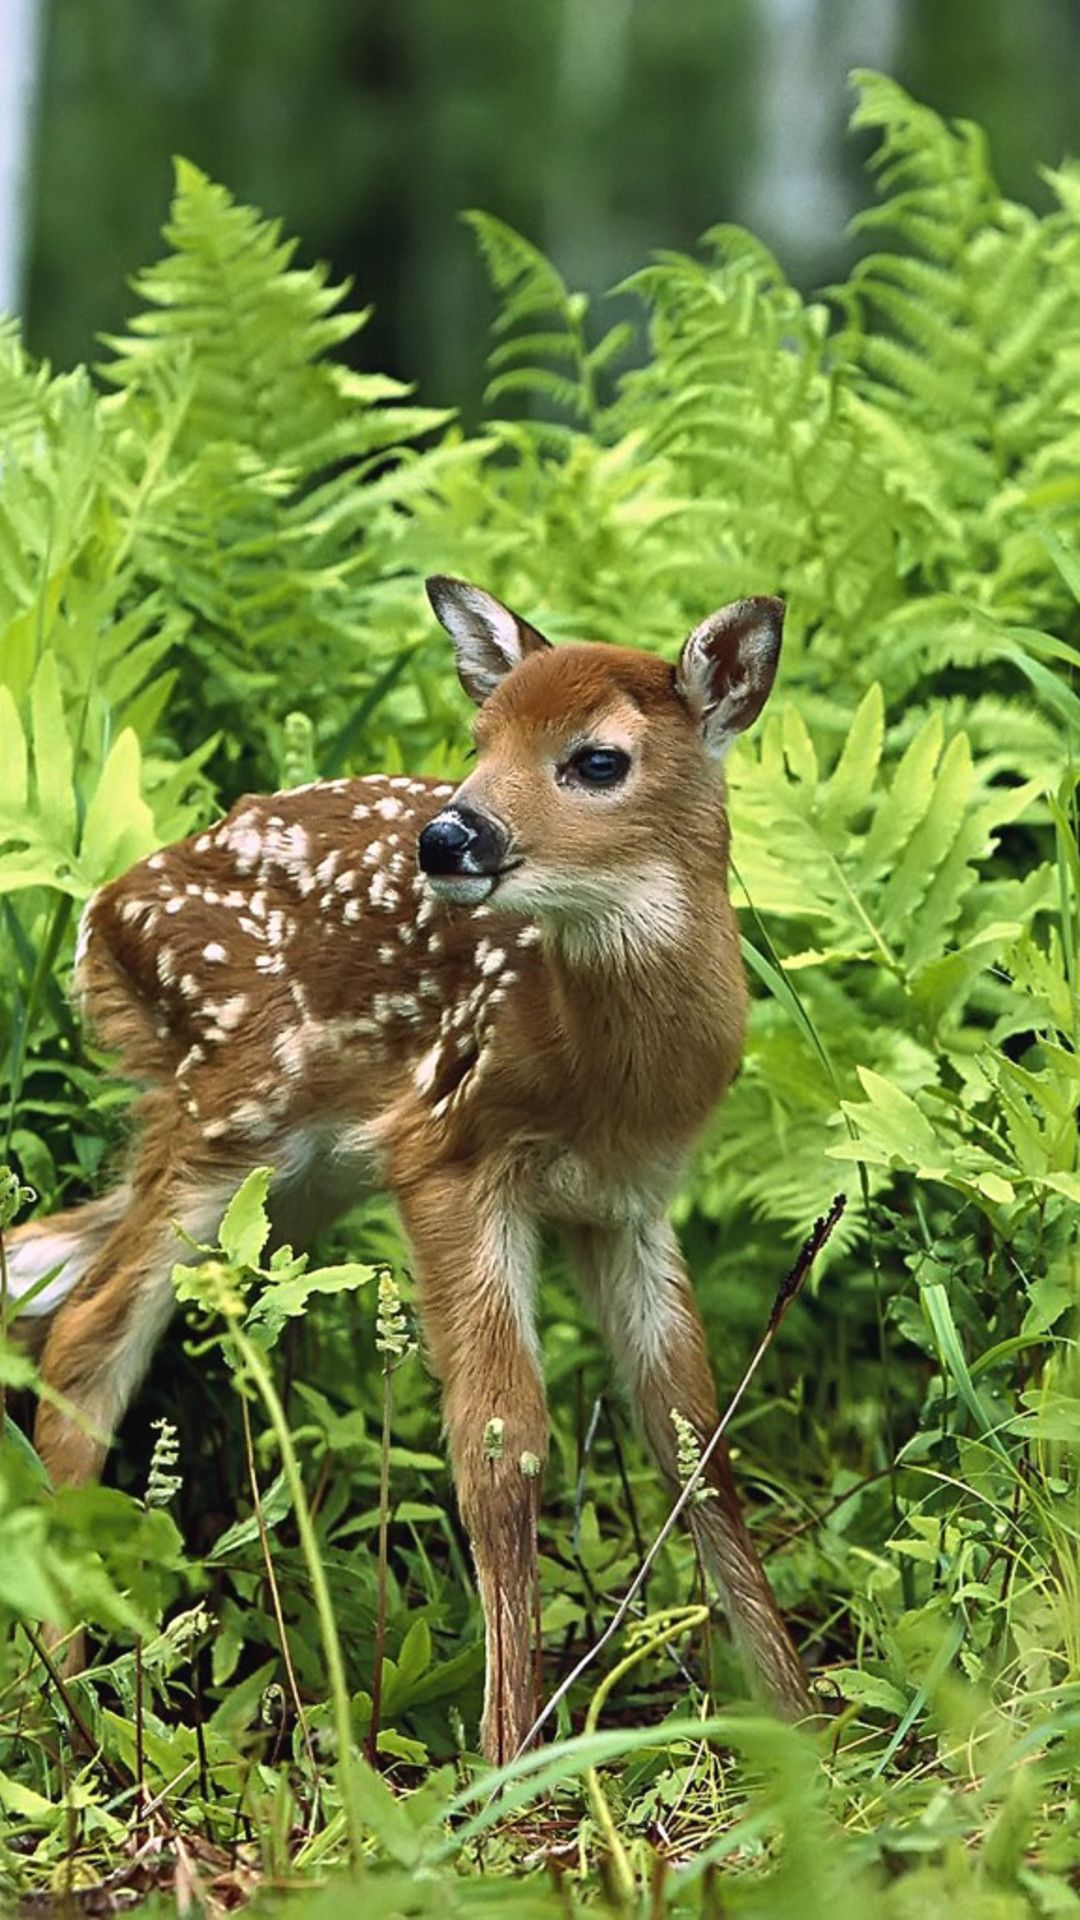 Wallpaper Download 1080x1920 A sweet baby deer in the